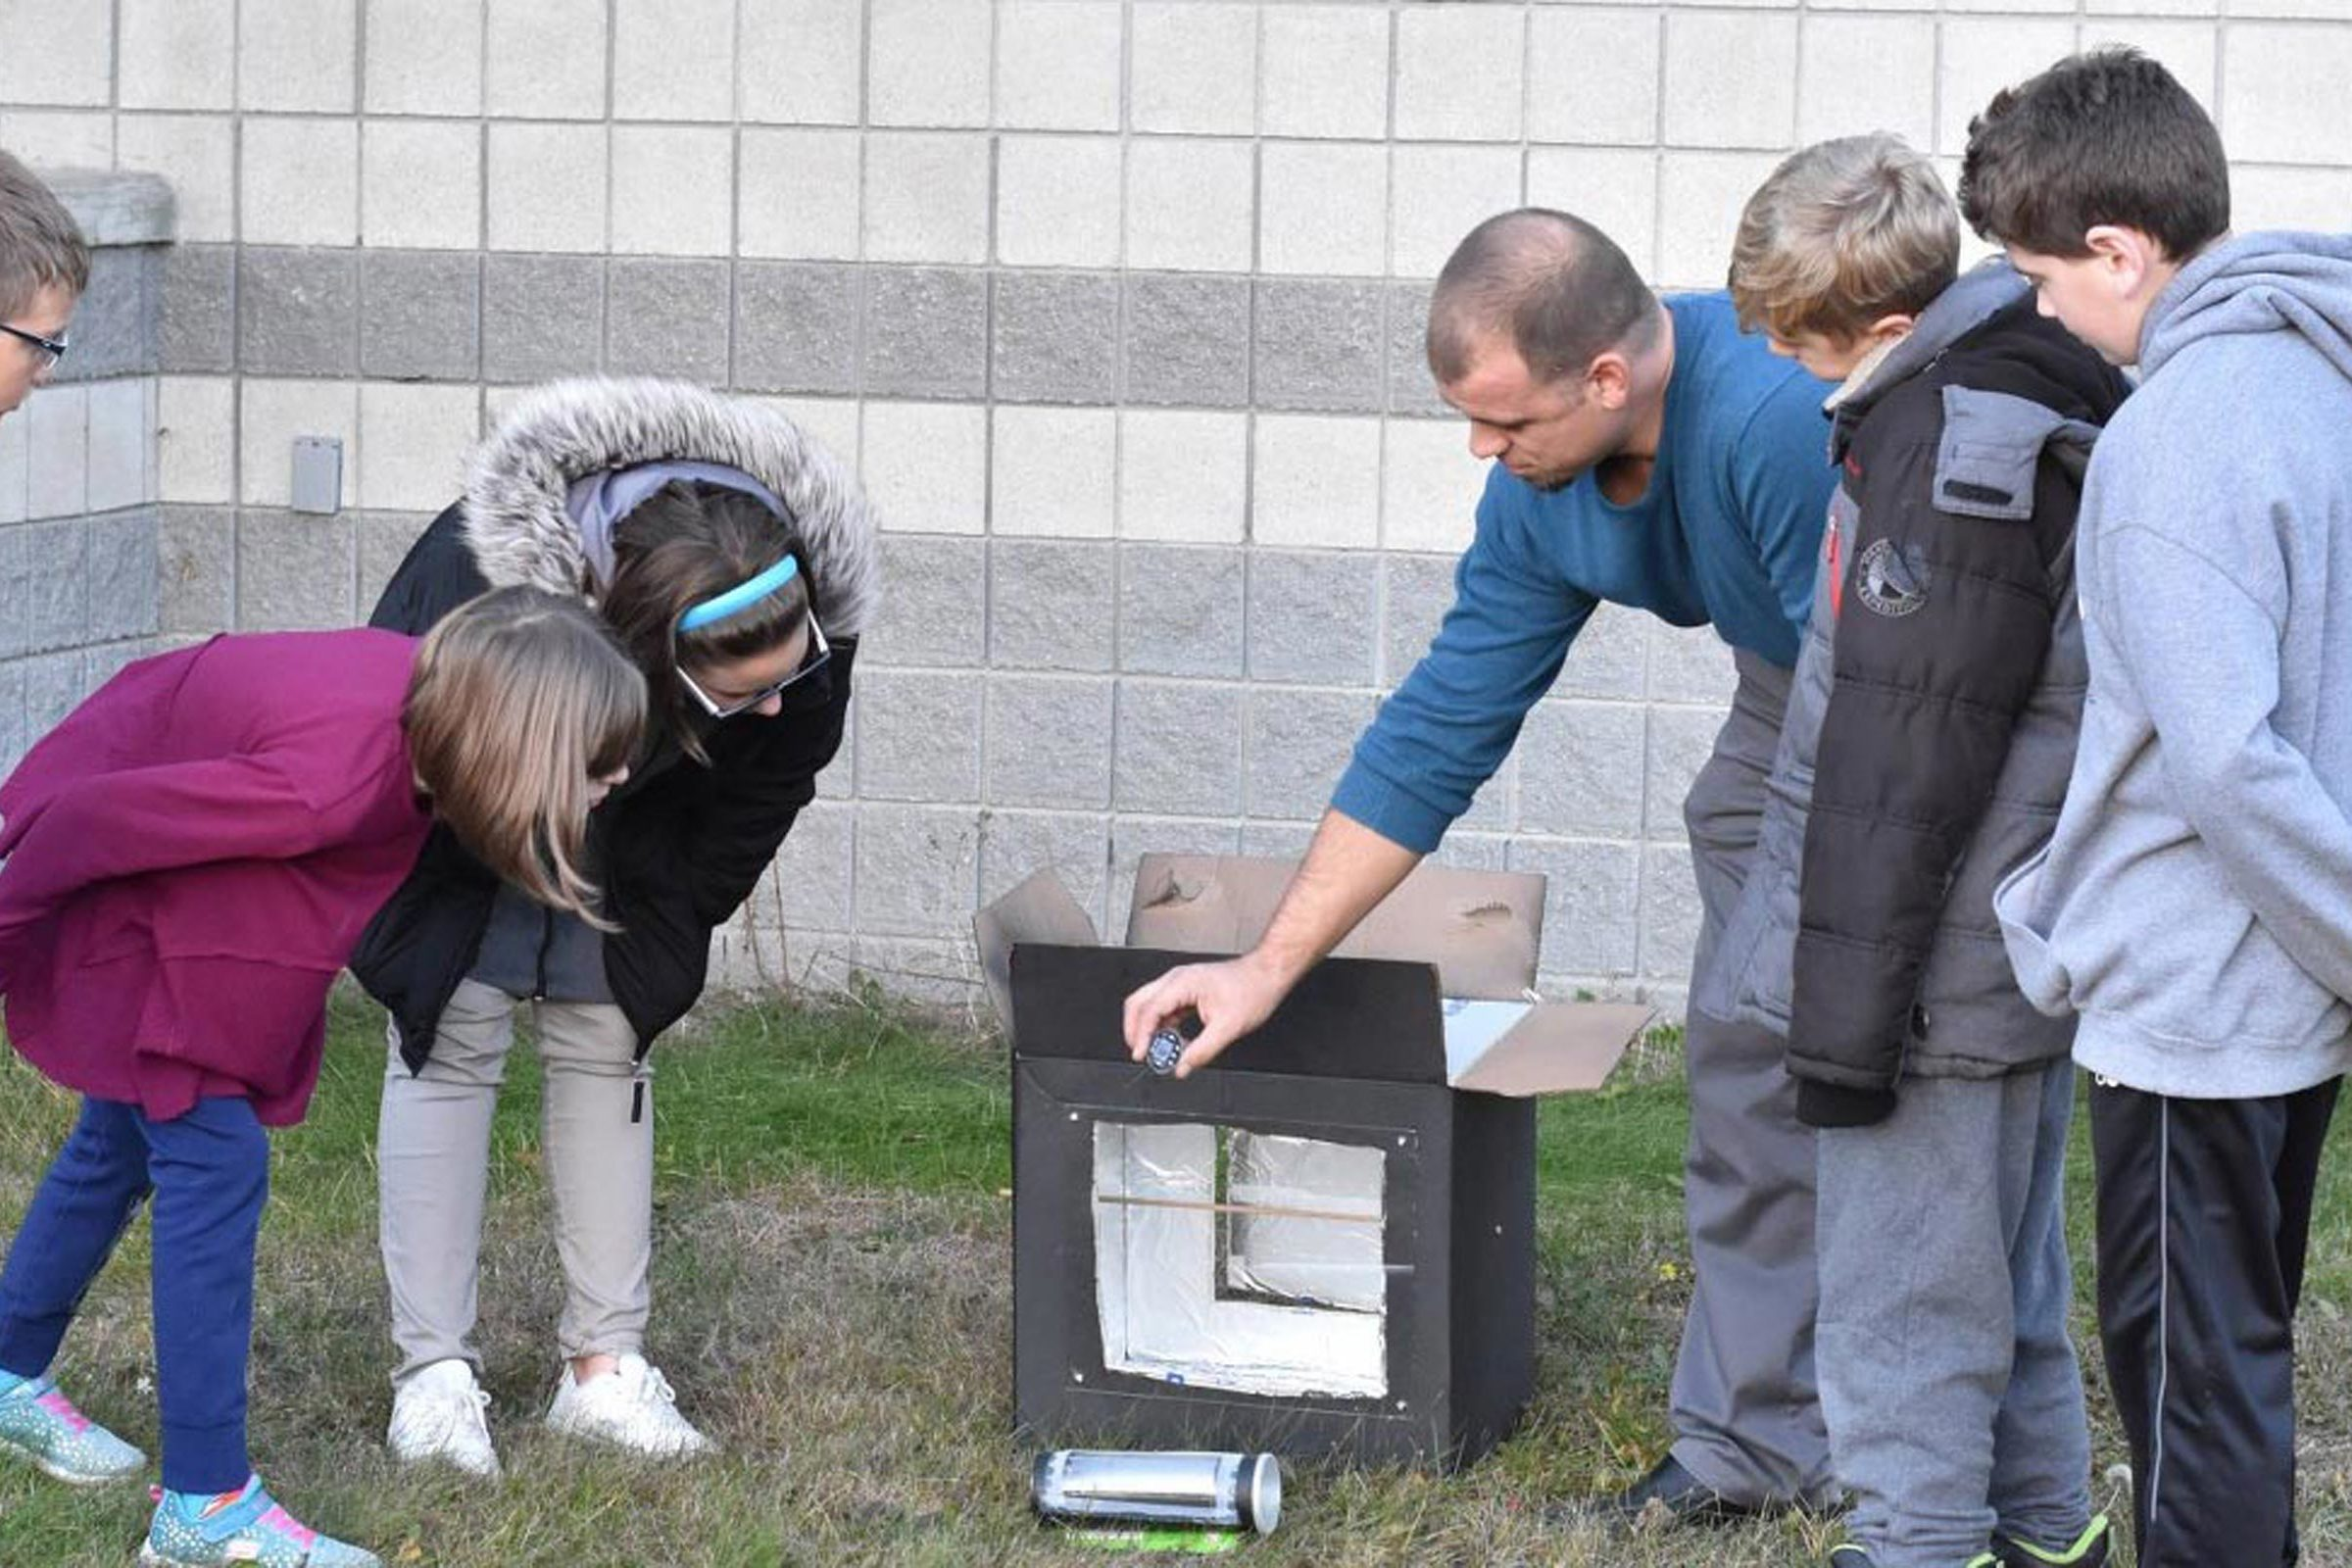 Aerospace Engineering Prof. James W. Cutler help FIRST LEGO team build solar oven